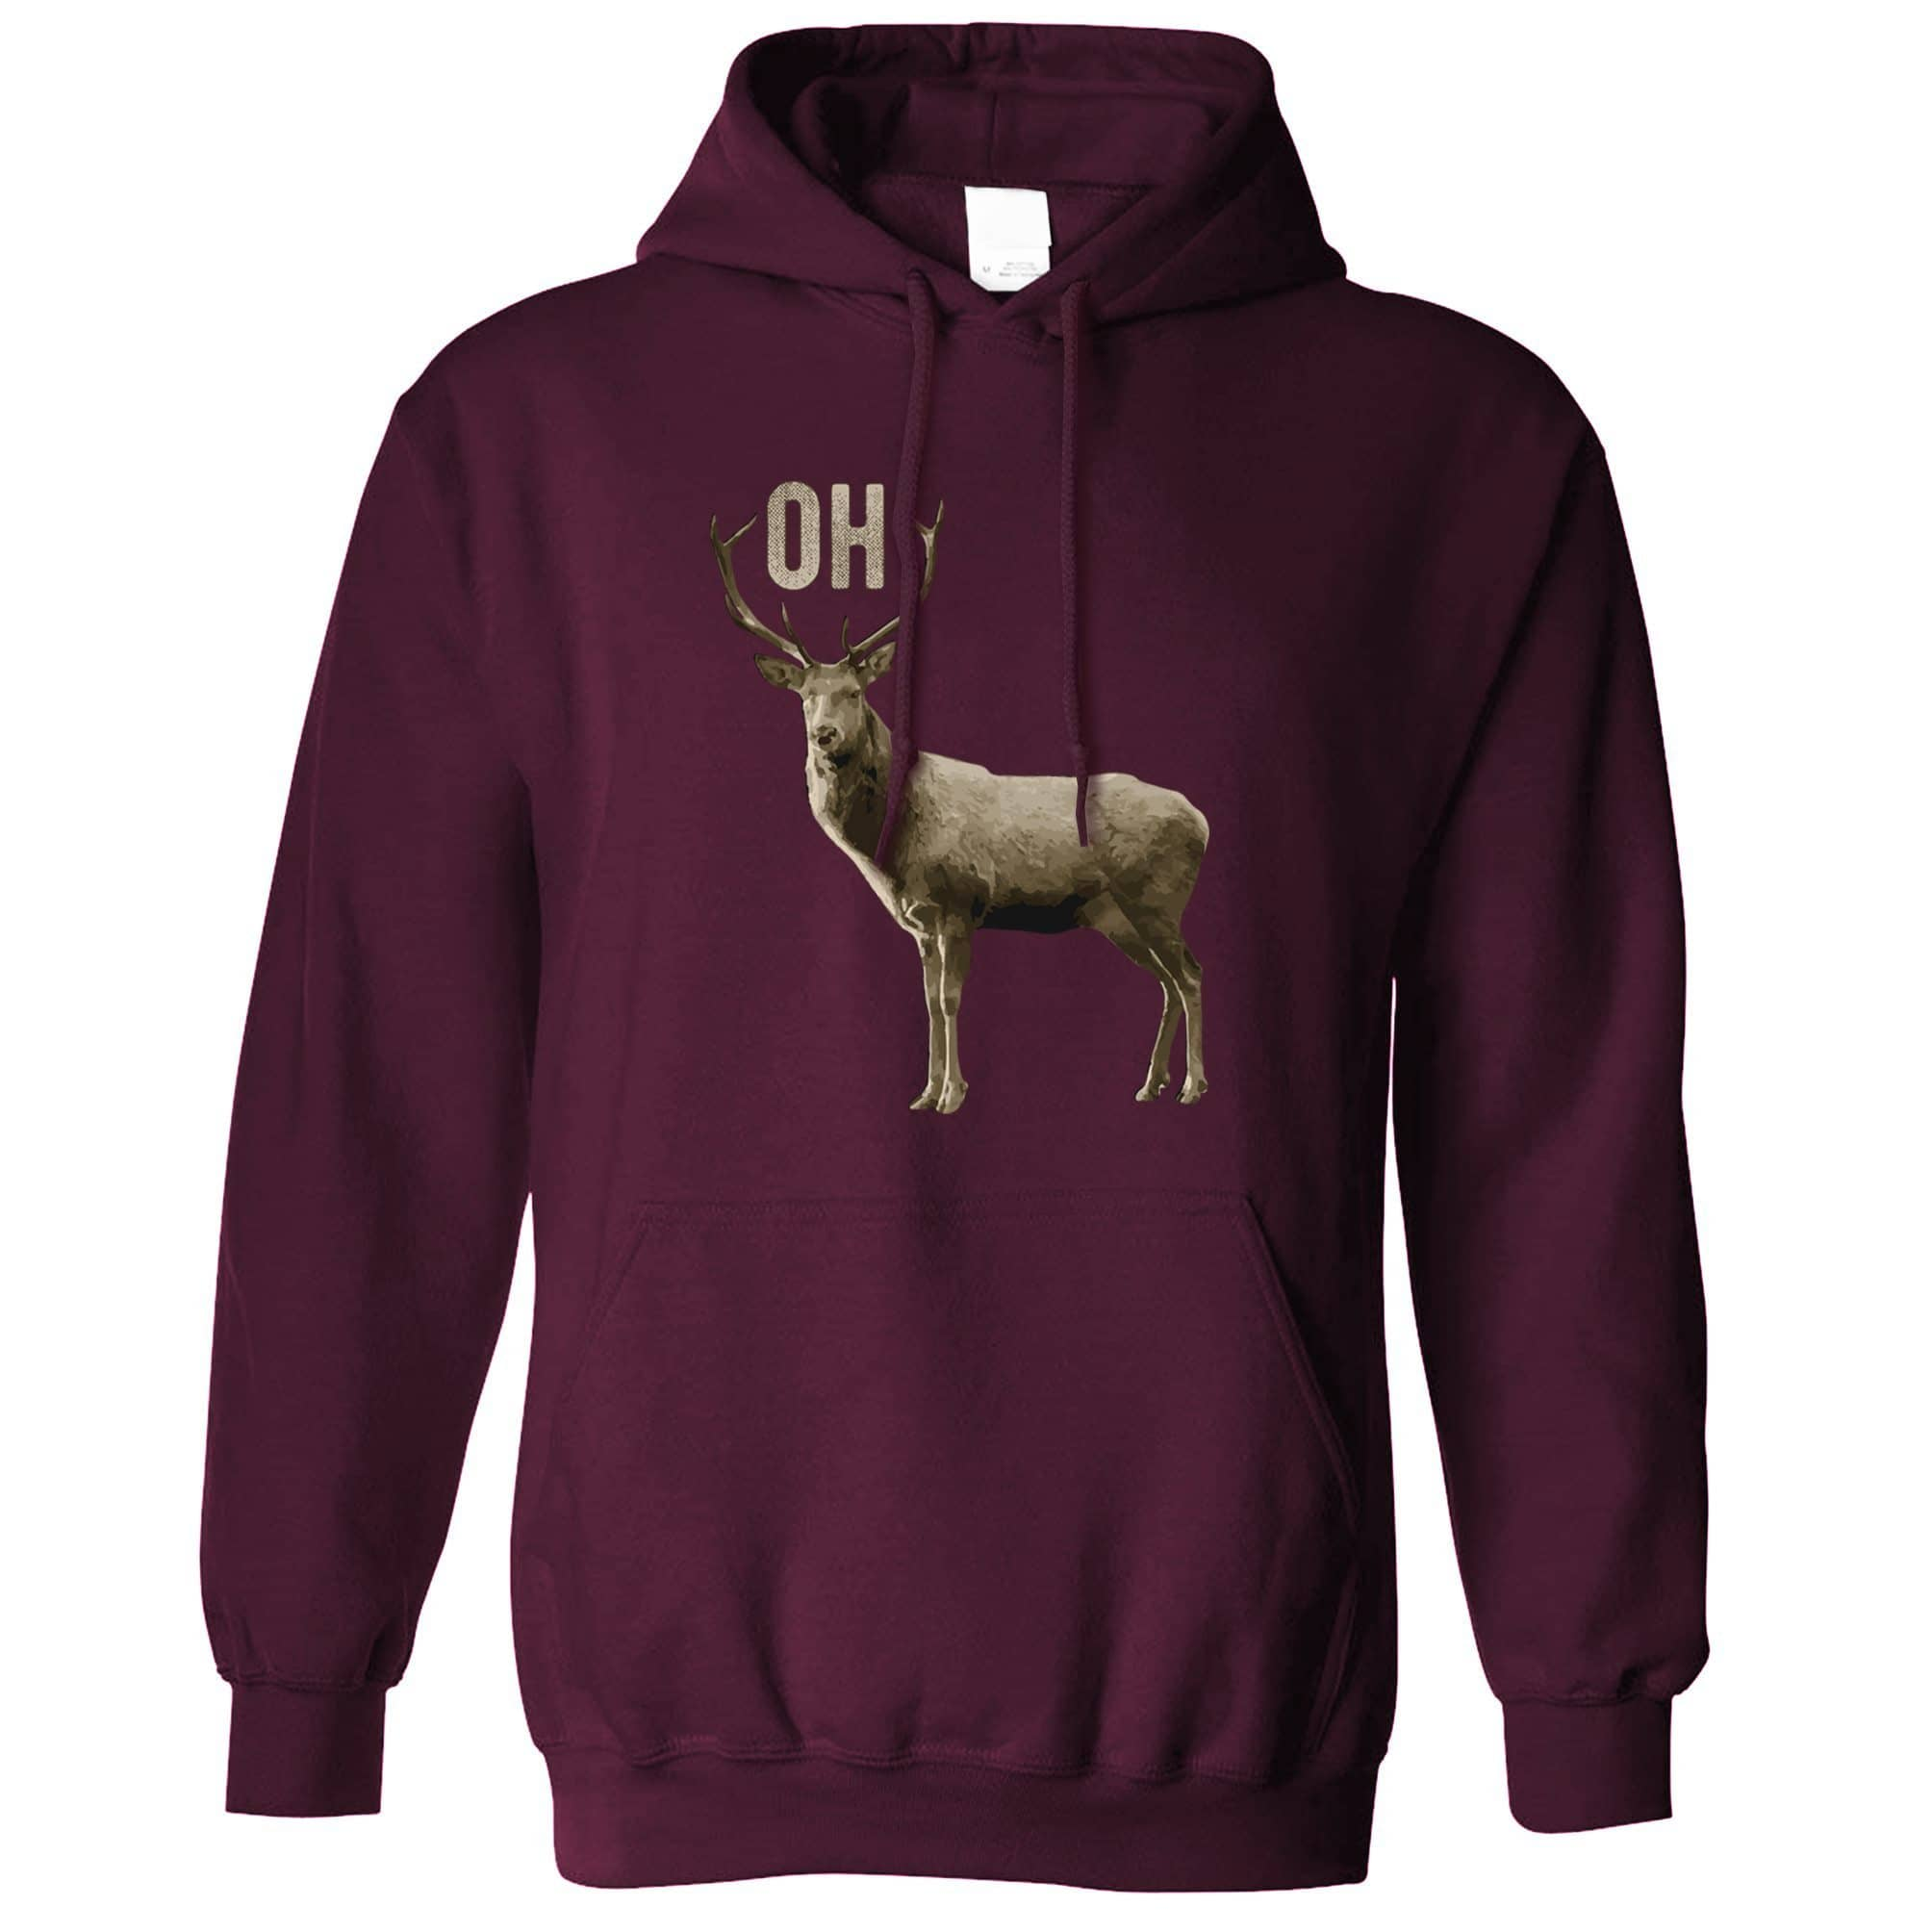 Buck Doe Hoodie Funny Oh Deer Pun Slogan Hooded Jumper